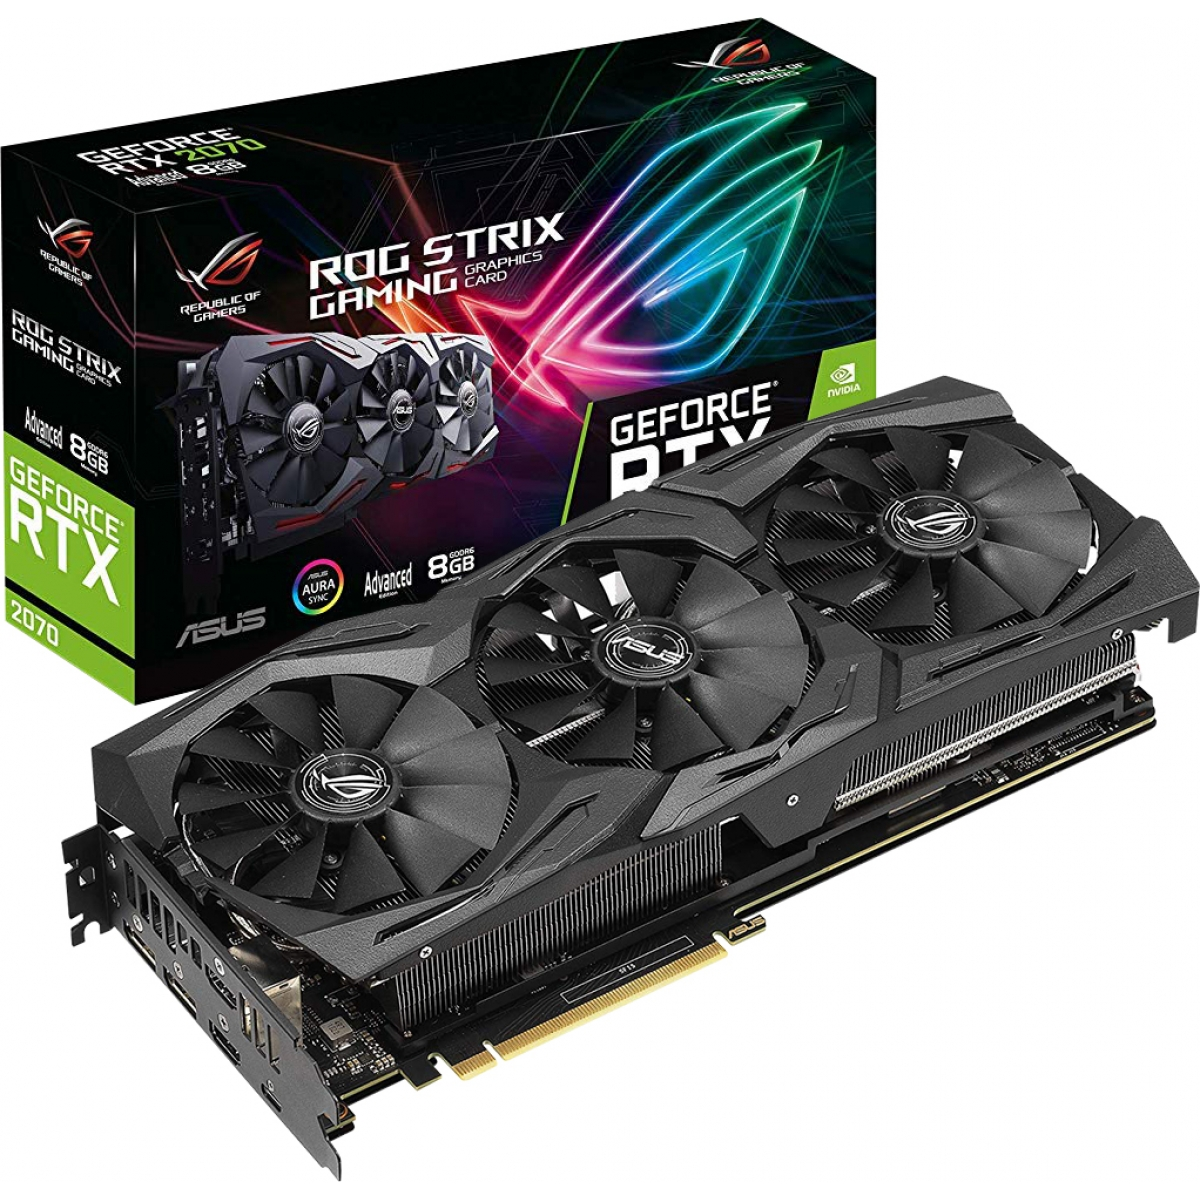 Placa de Vídeo Asus, Geforce, RTX 2070 Advanced, 8GB, GDDR6, 256Bit, ROG-STRIX-RTX2070-A8G-GAMING